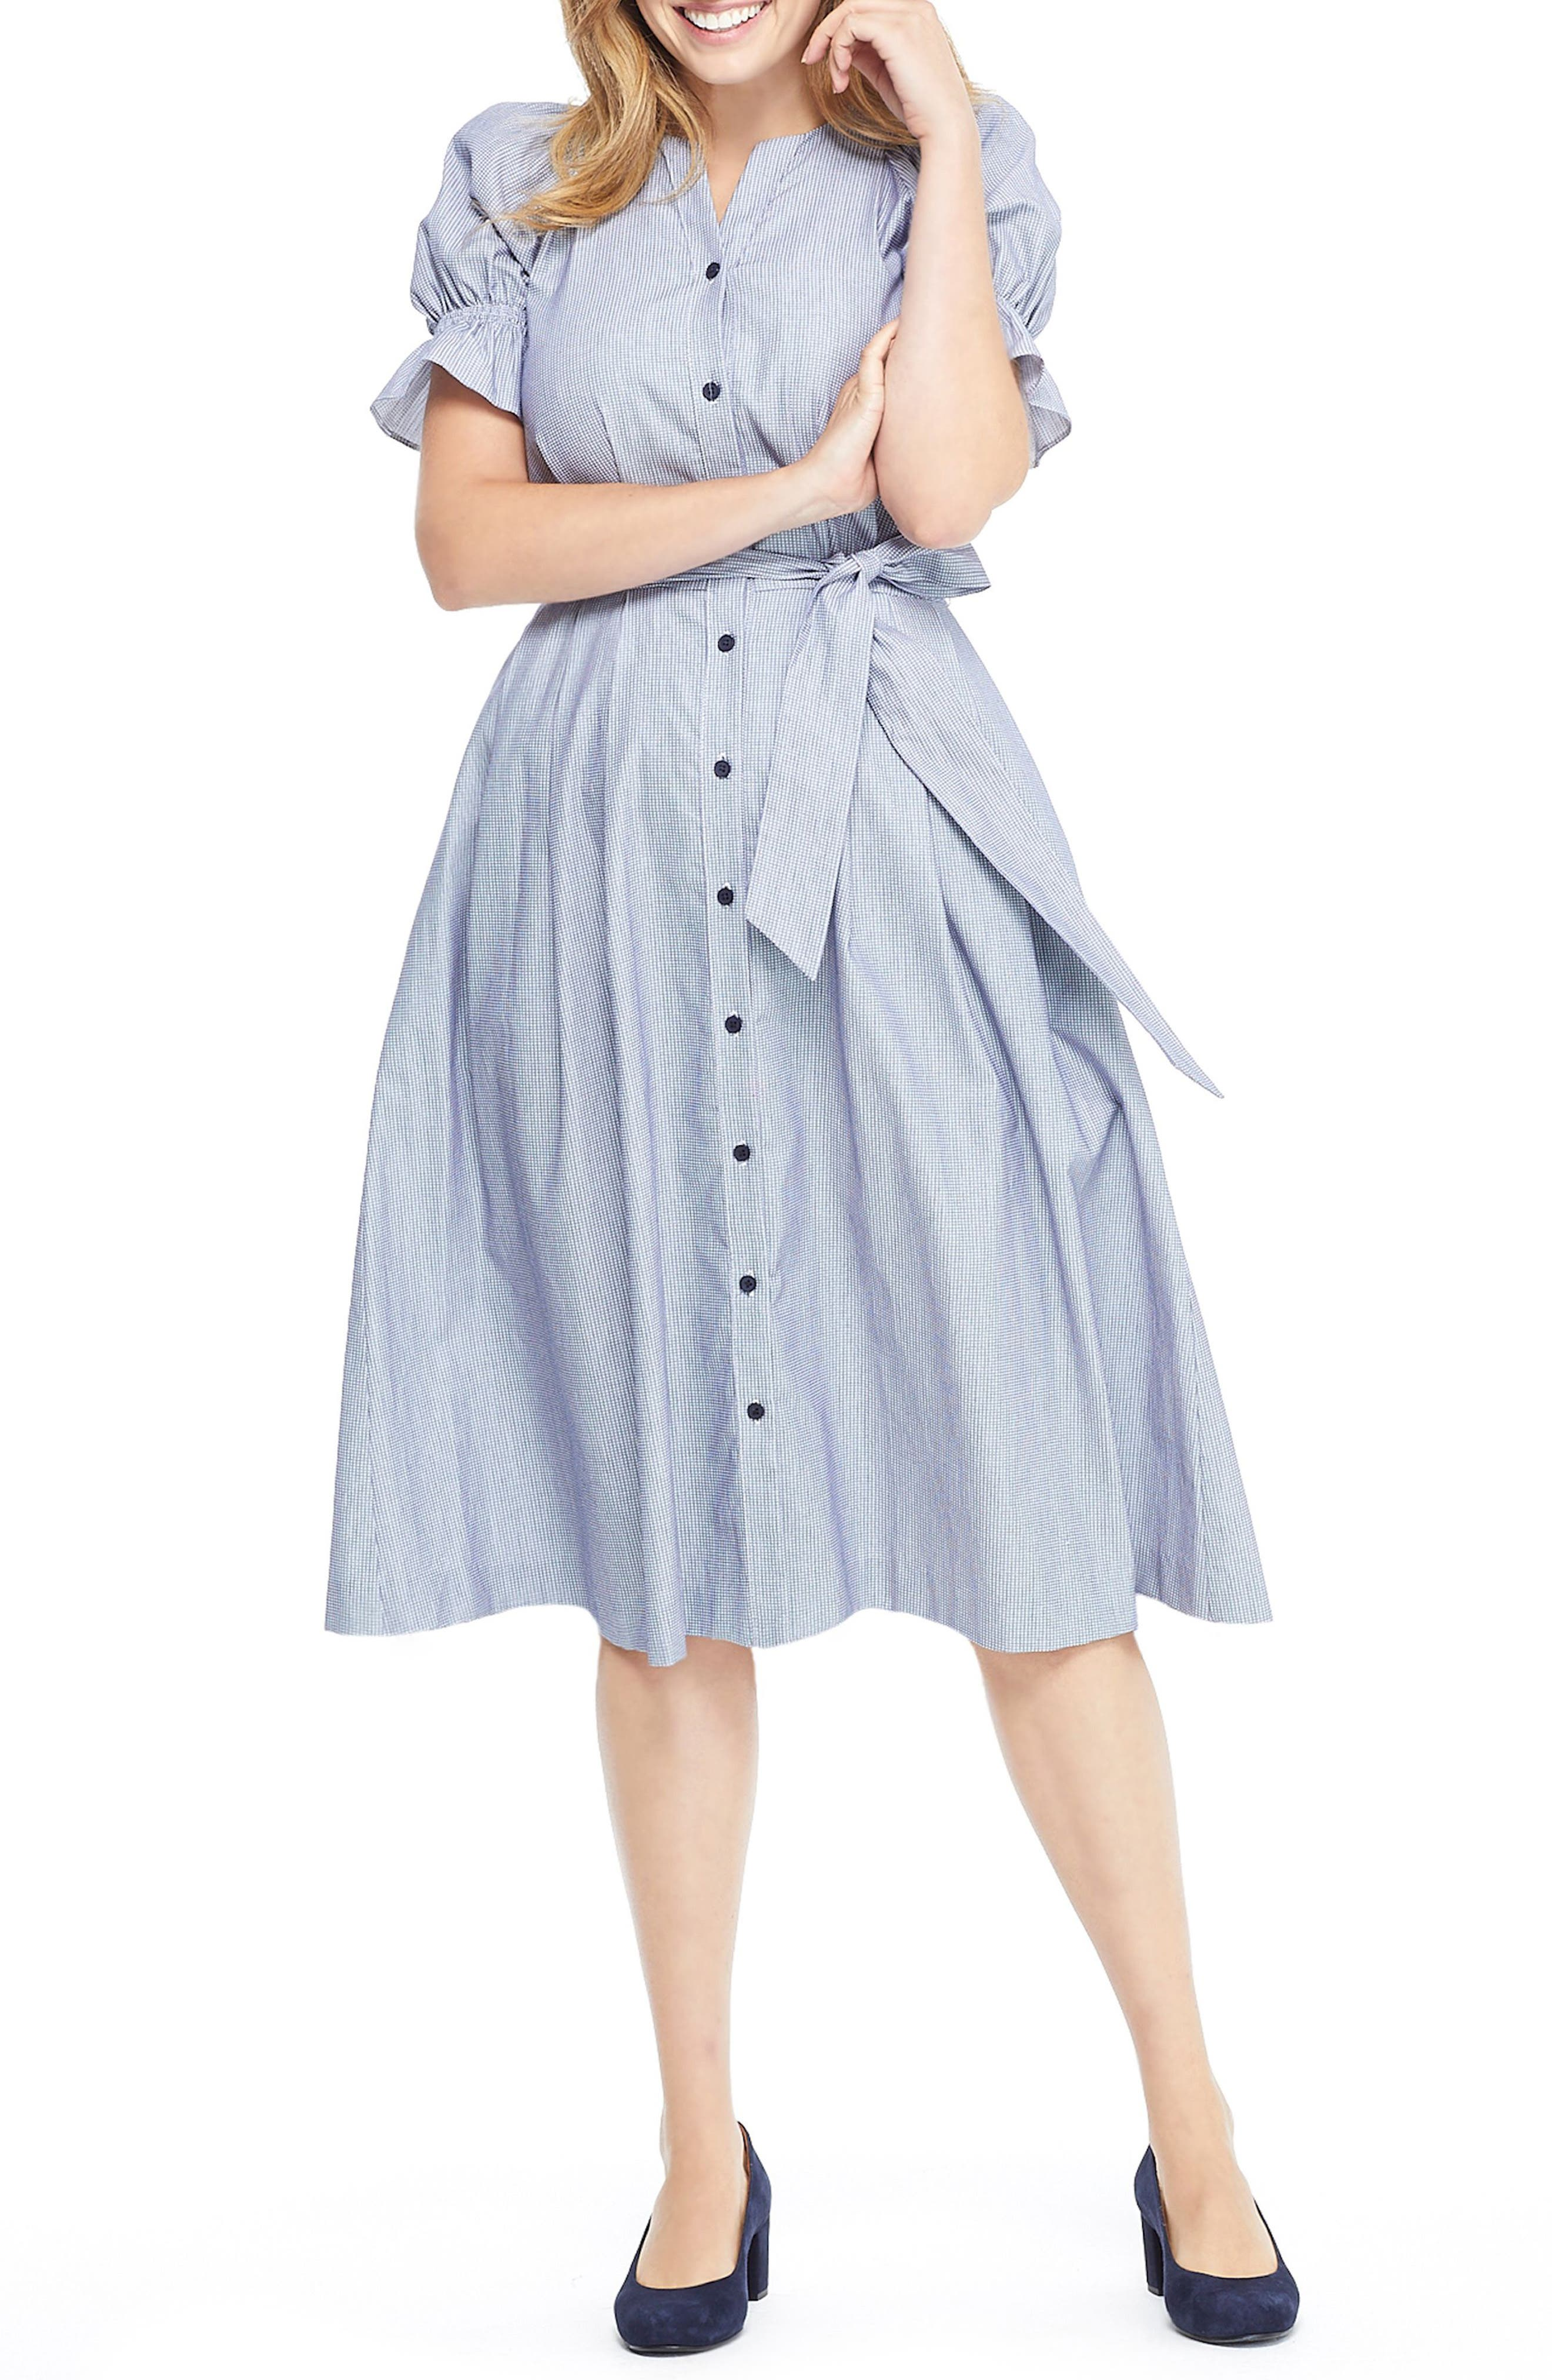 GAL MEETS GLAM COLLECTION, Daisy Cotton Dobby Shirtdress, Main thumbnail 1, color, BLUE/ WHITE